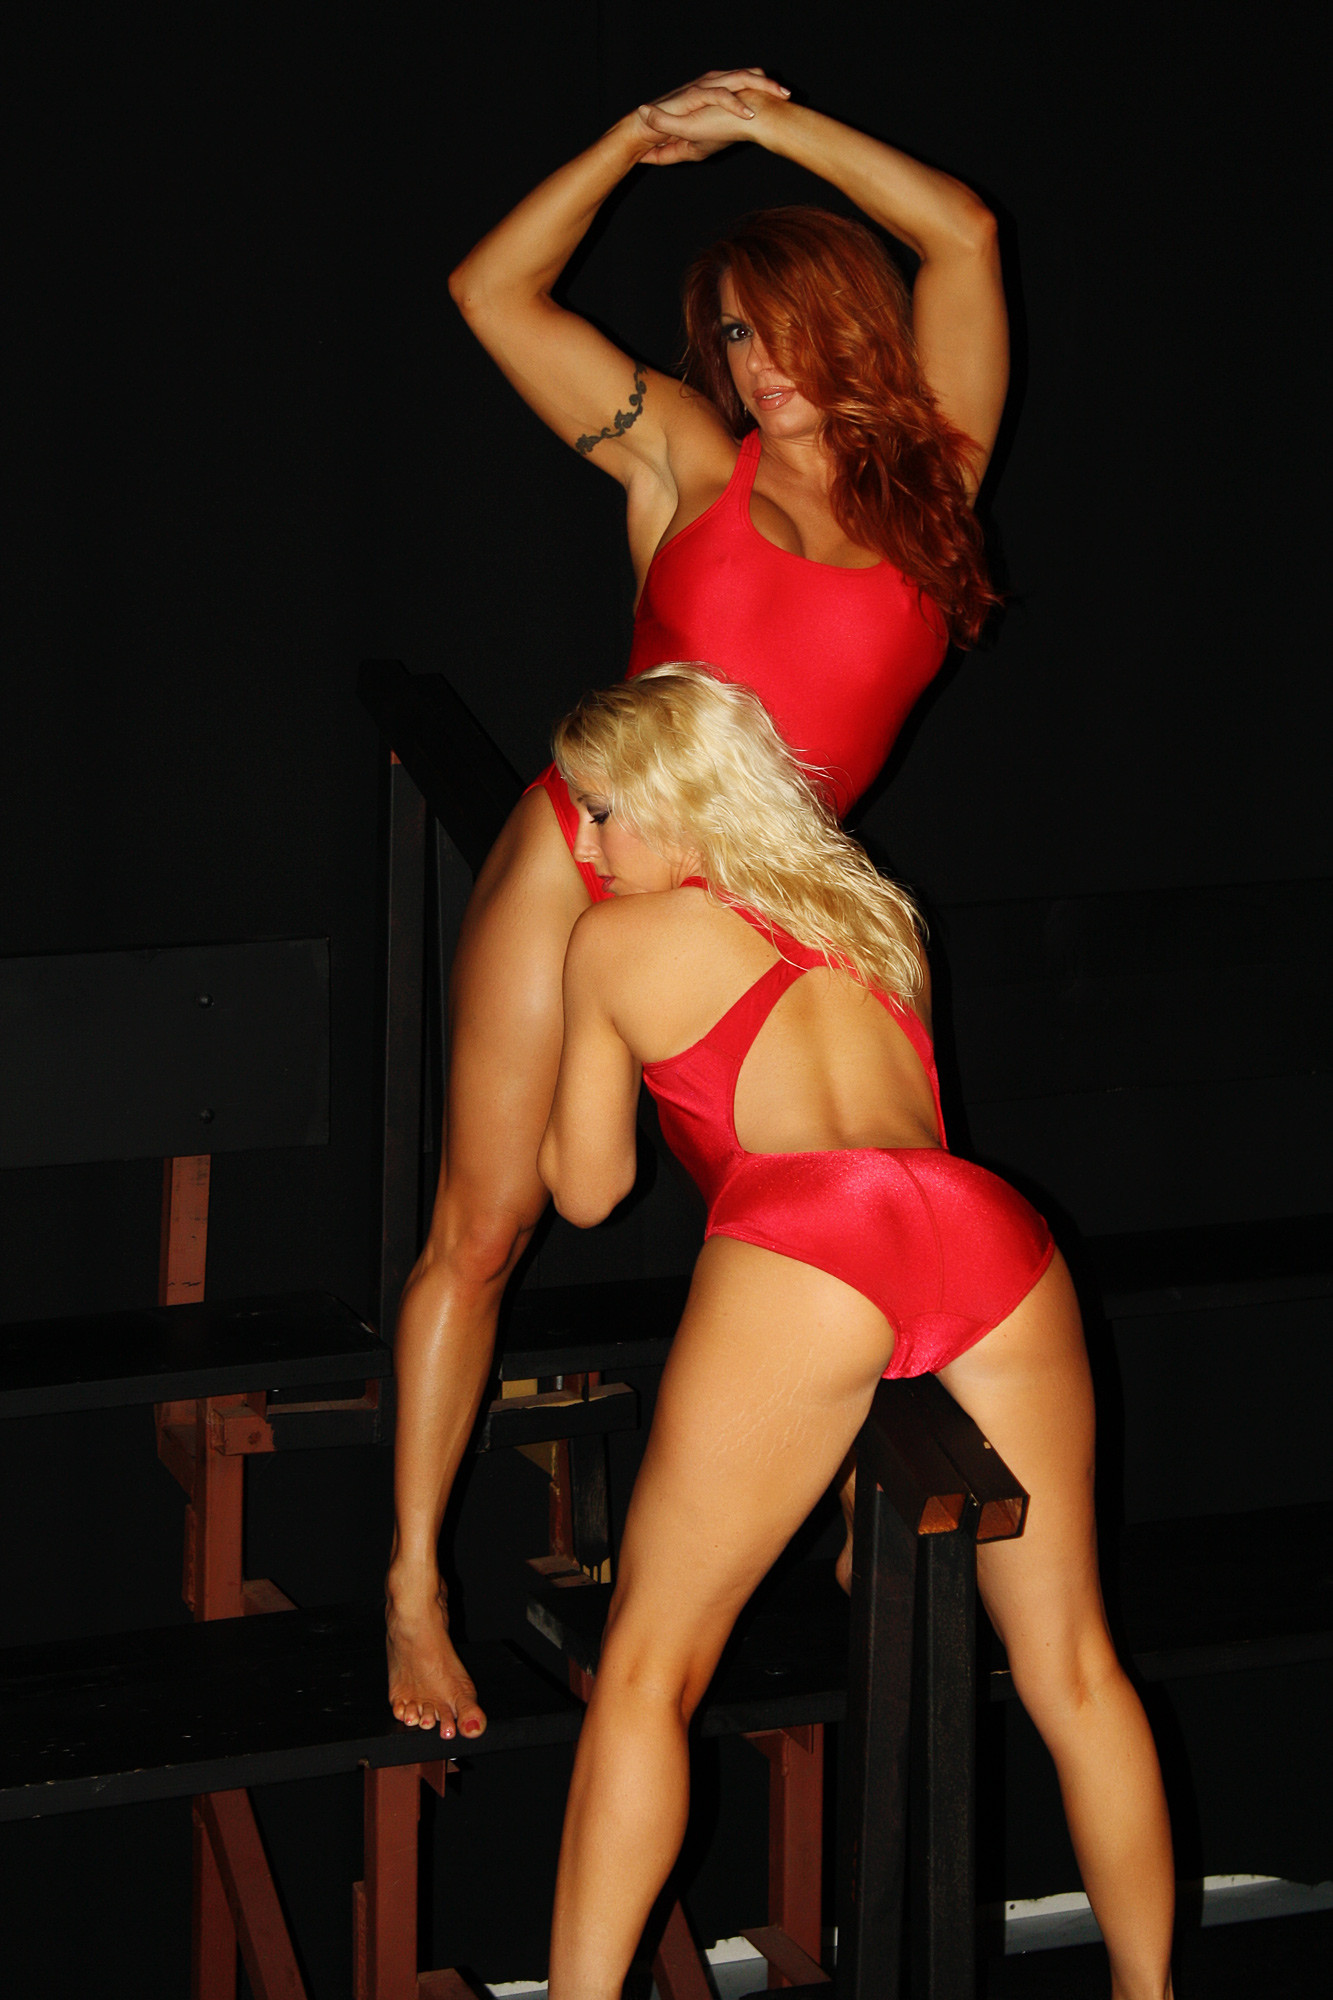 Amber O Neal amber and april: baywatch babes - official website of april